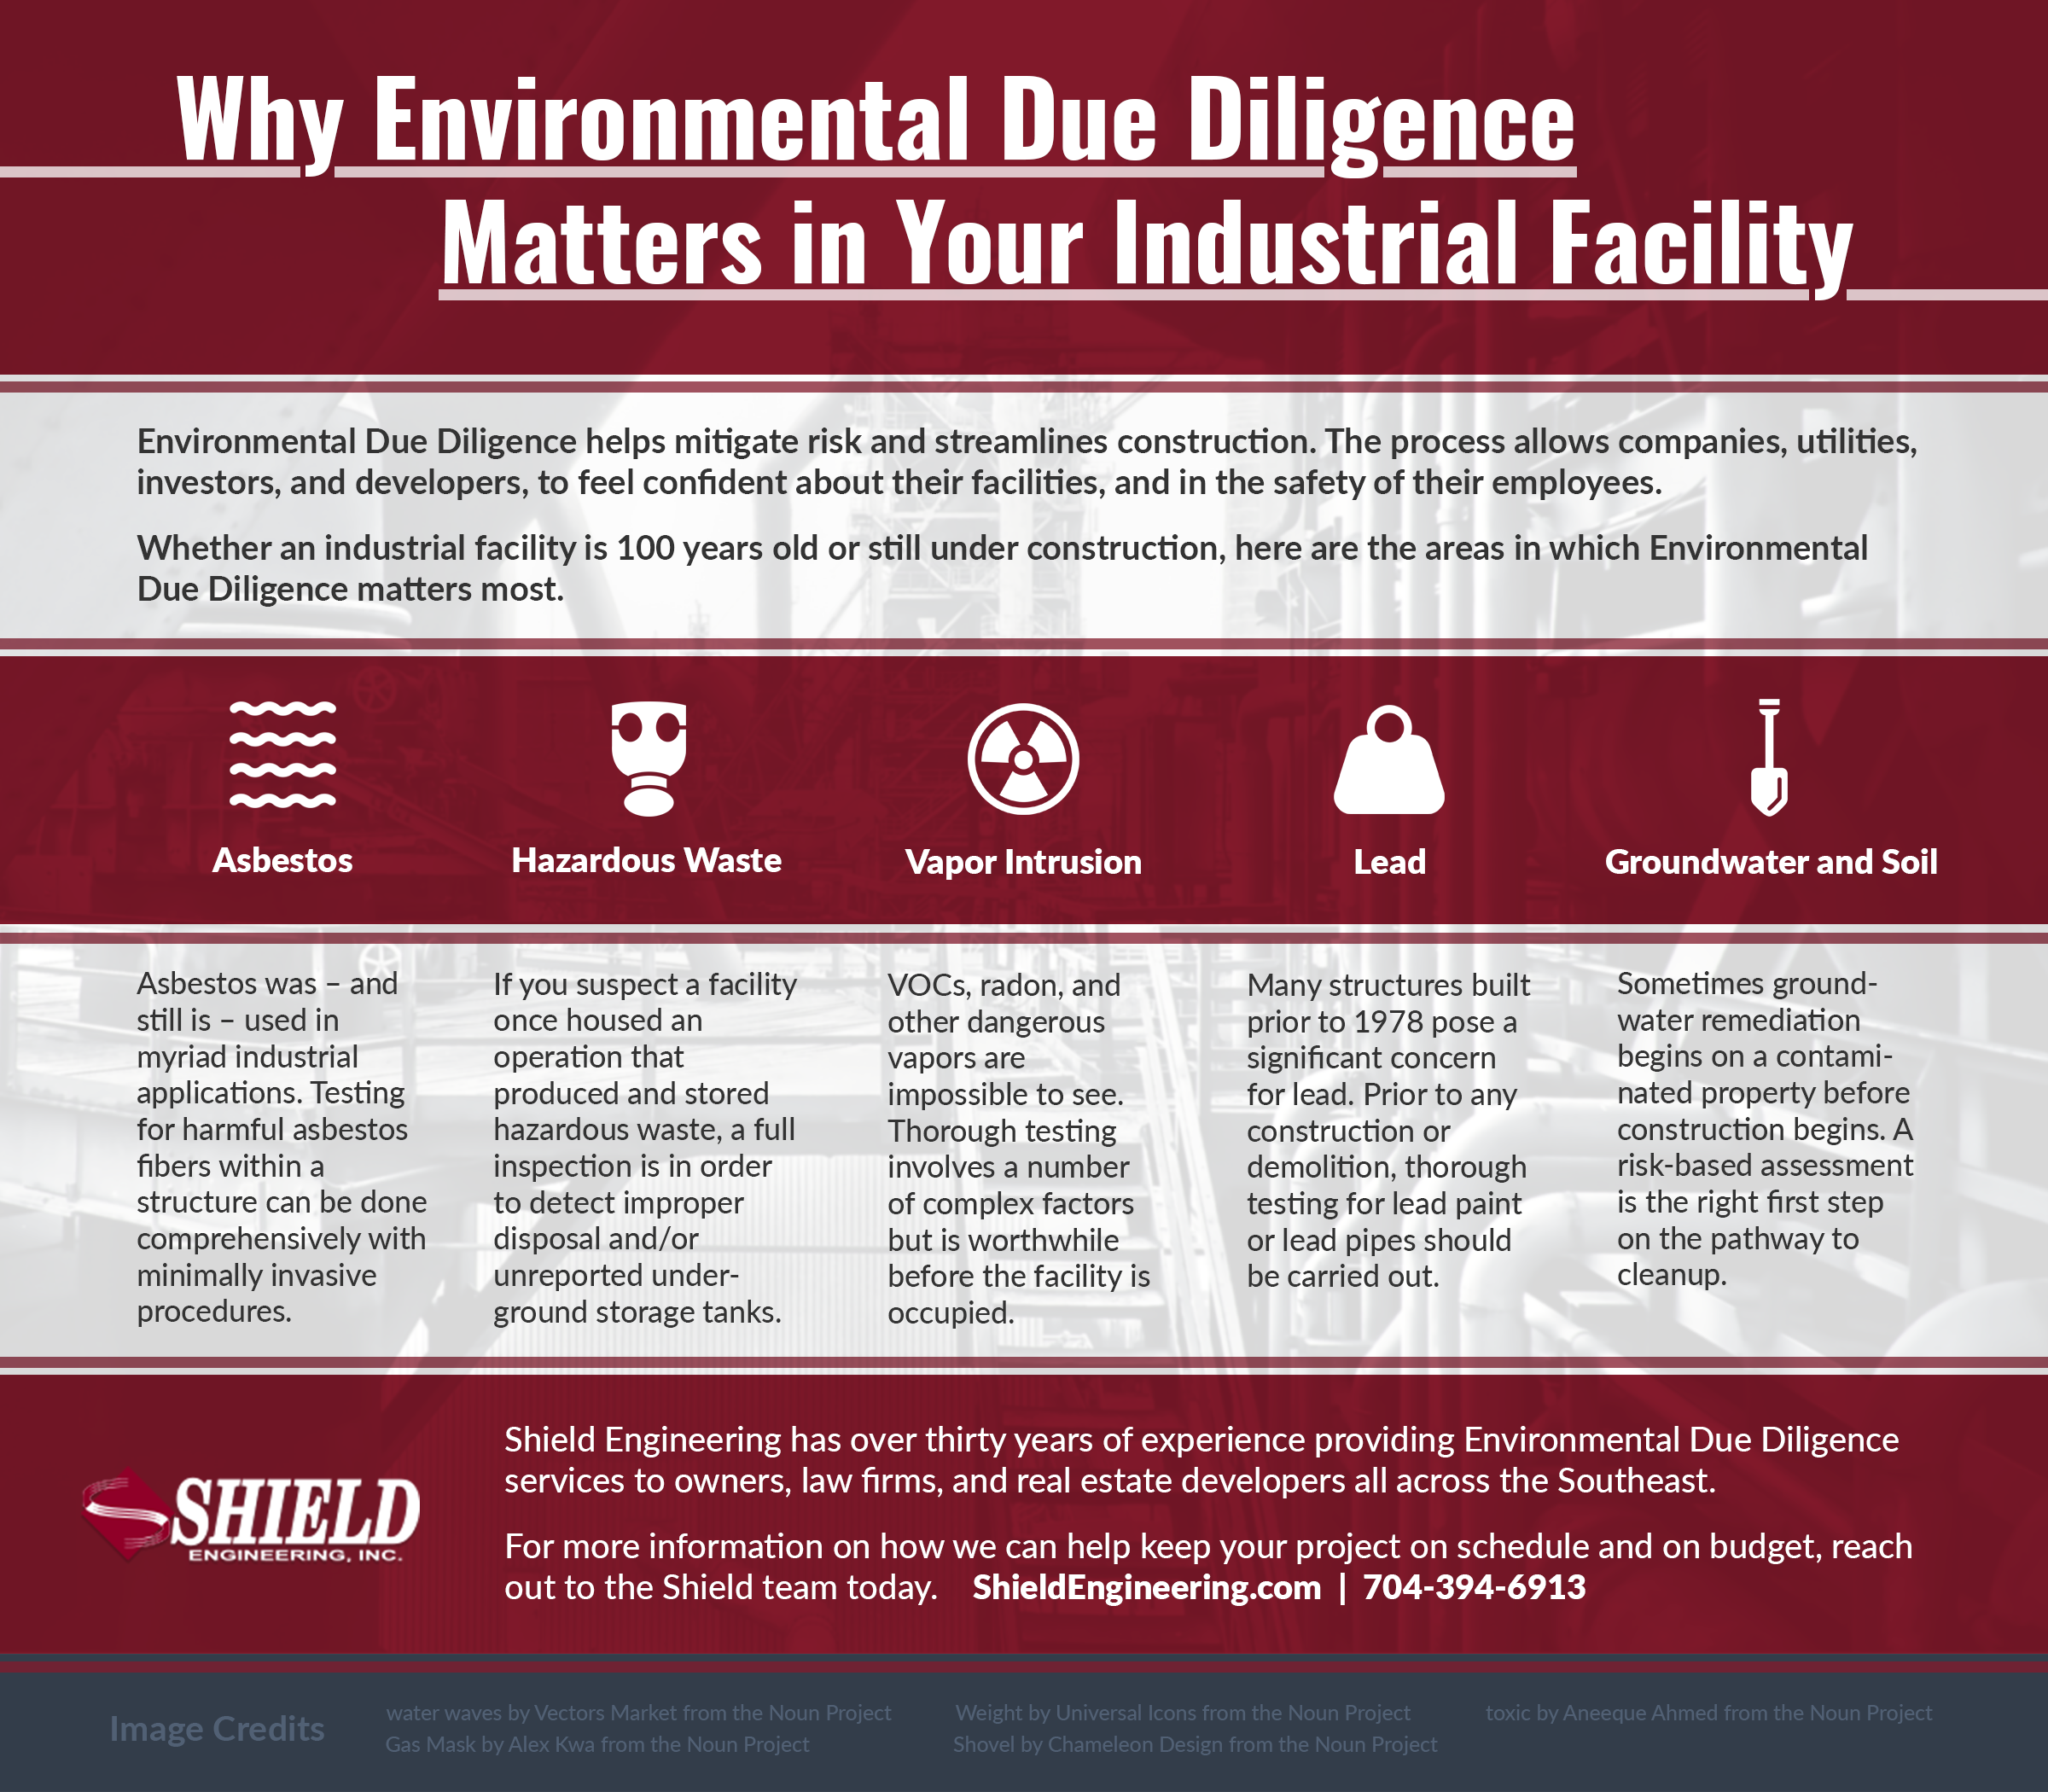 (Shield Engineering) Why Environmental Due Diligence Matters In Your Industrial Facility Q2 2018 Infographic APPROVED